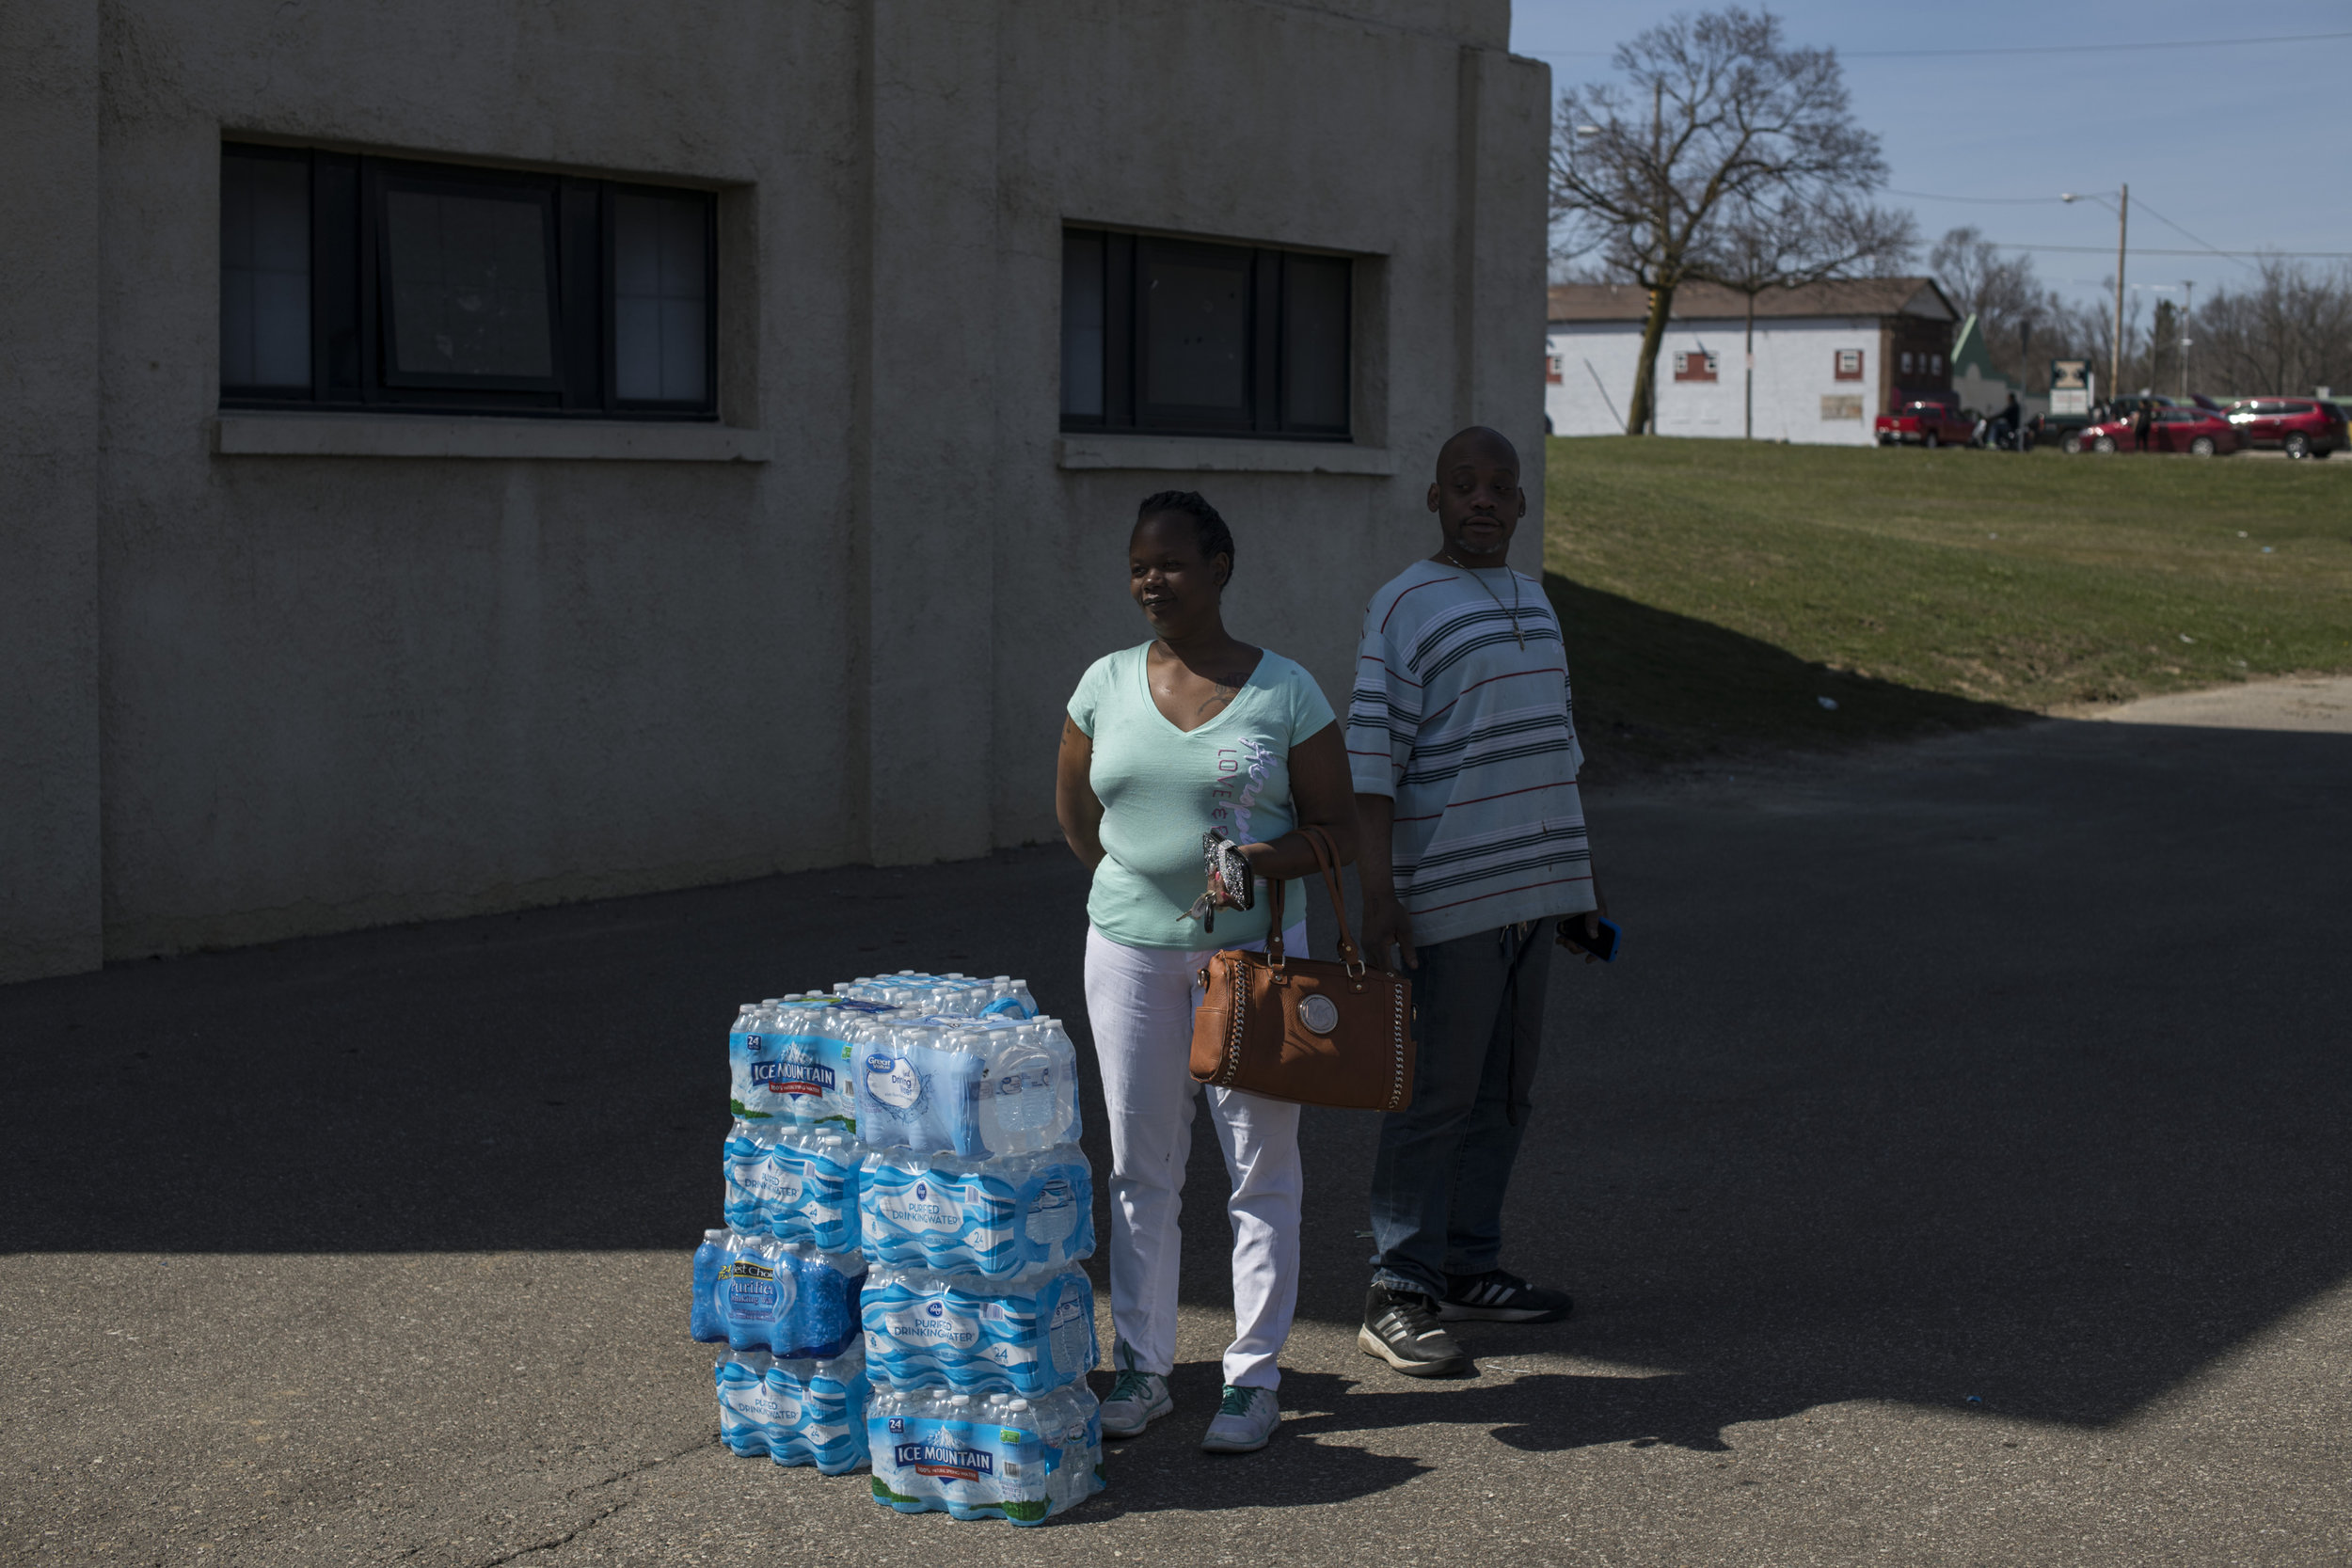 Josette Malone, 41, and Derrick Webster, 44, stand outside waiting for a ride from a friend after picking up cases of water from the Berston Field-House in Flint, on April 22, 2018. Following the closure of the state run free water distribution sites, community centers and churches stepped in to help the few residents that were able to find transit to a a very limited amount of water donations. At some sites, residents waited for over two hours to pick up cases of bottled water.